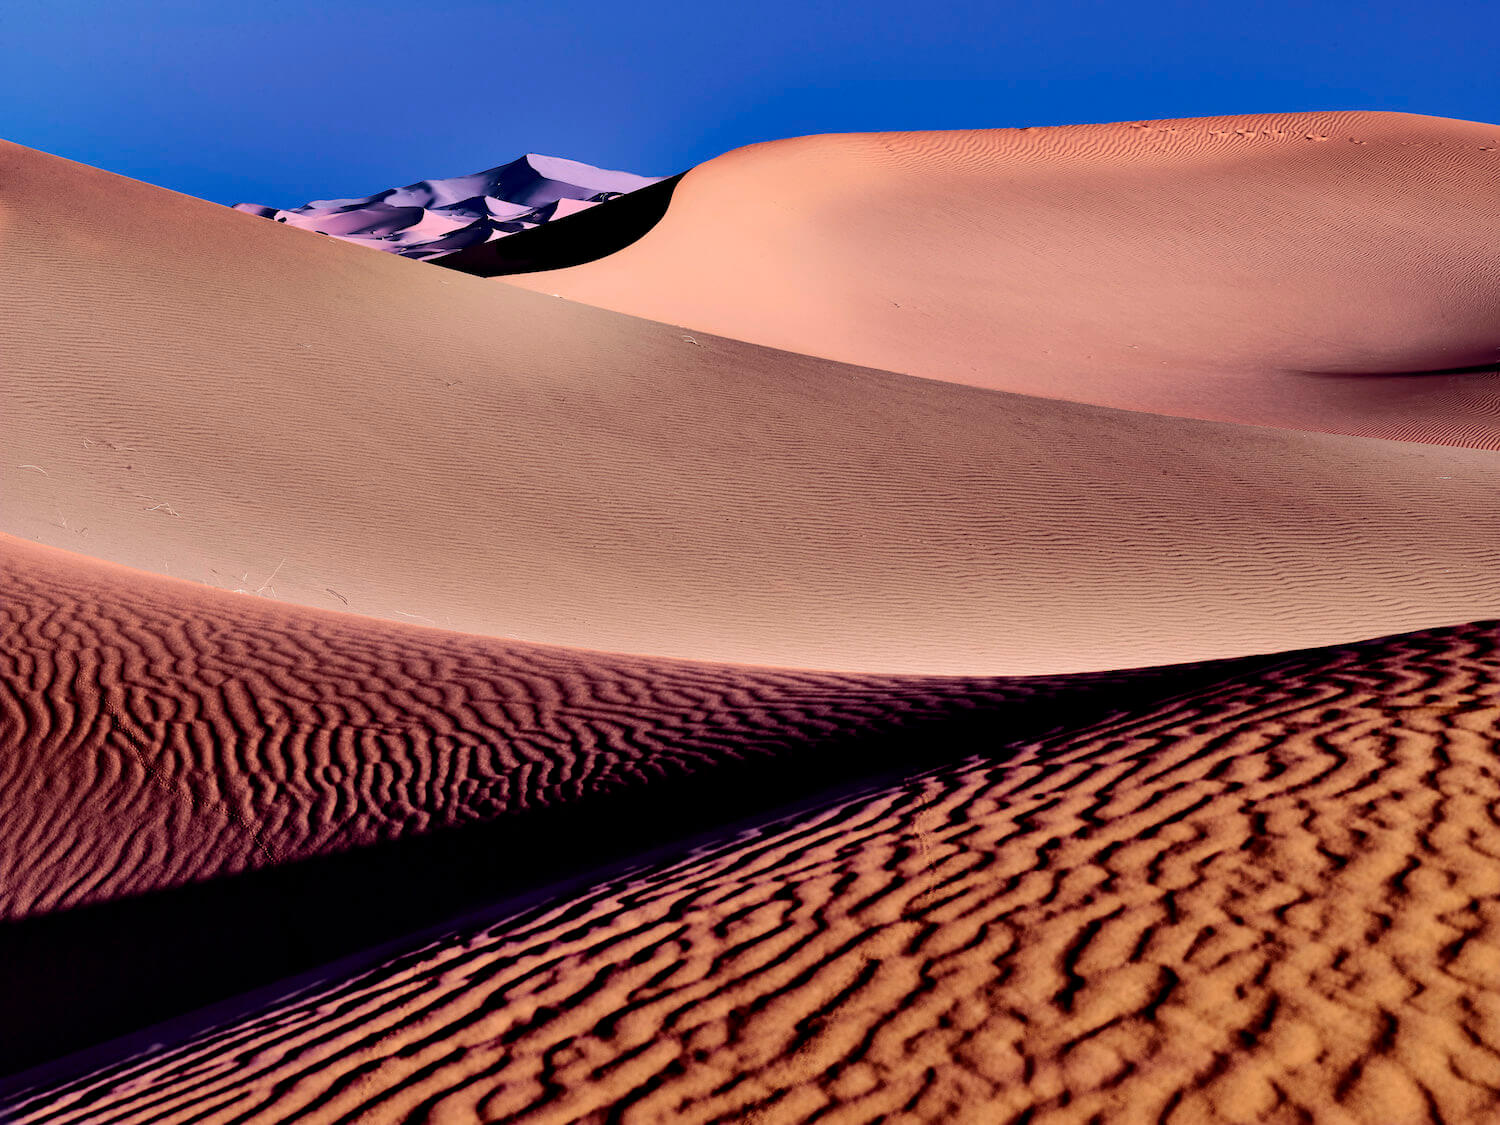 dune landscapes are ideally set up portfolio reviews